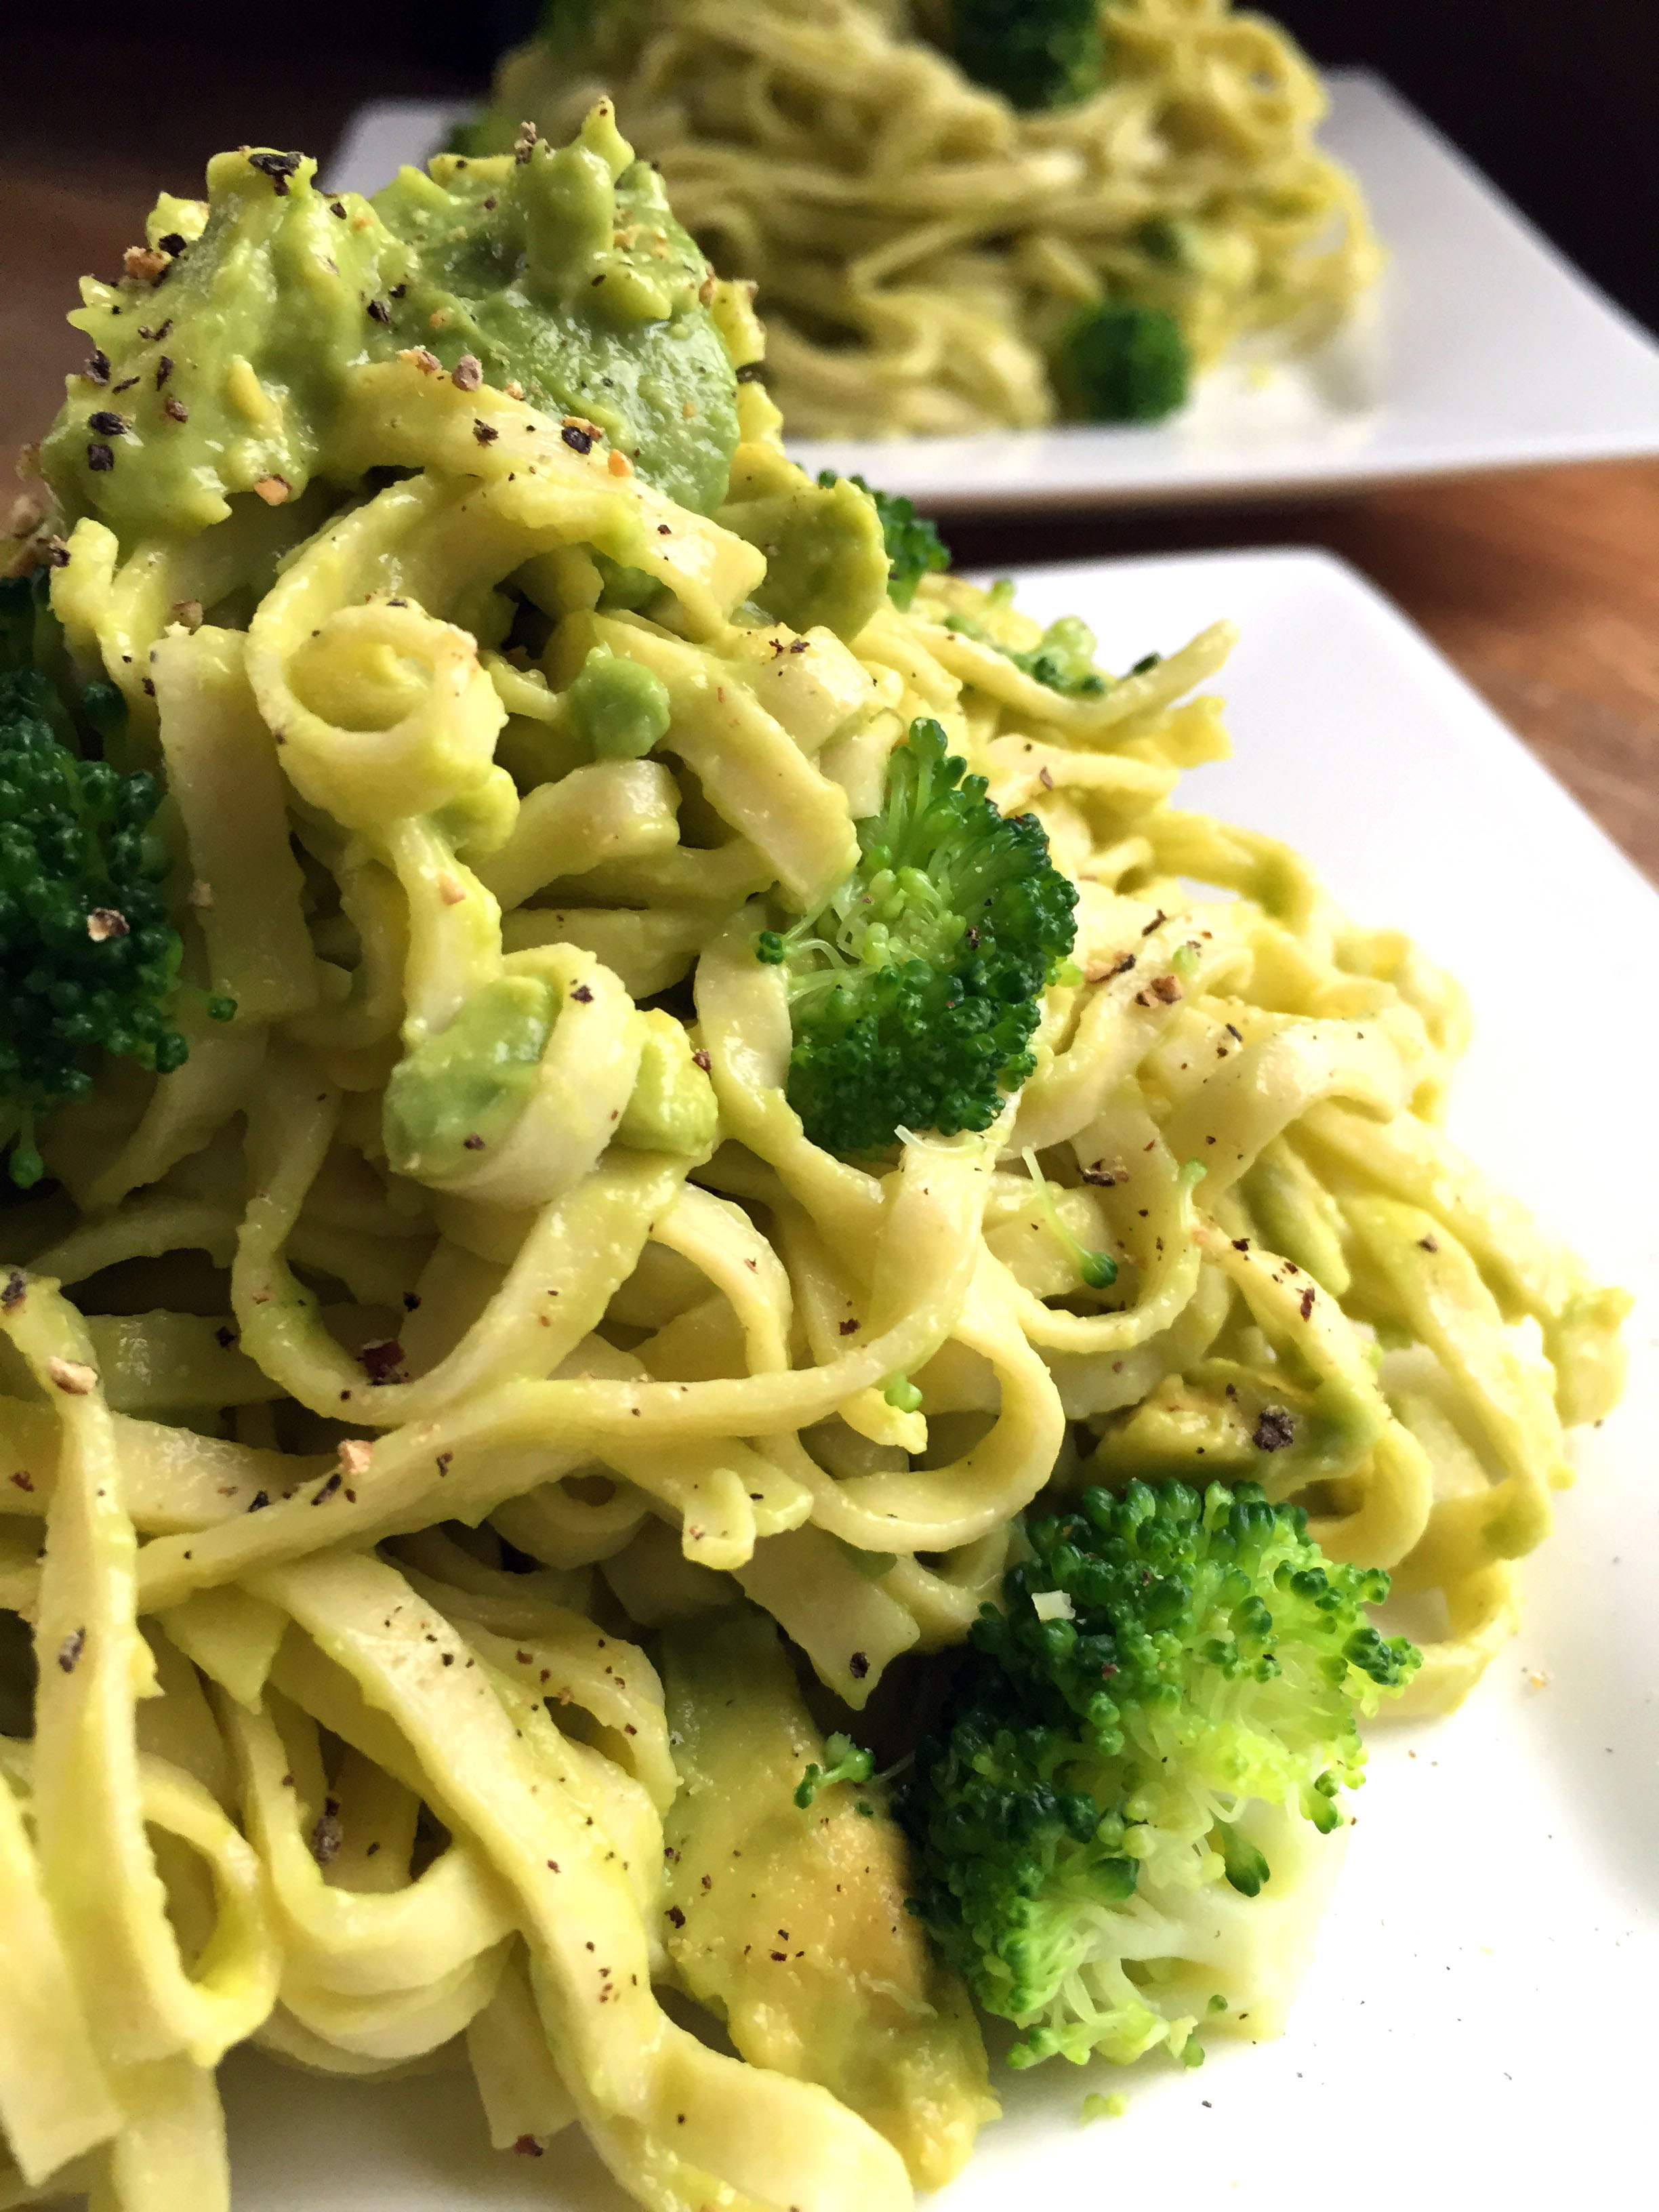 4-Ingredient Vegan Creamy Avocado Pasta with Broccoli Delightful